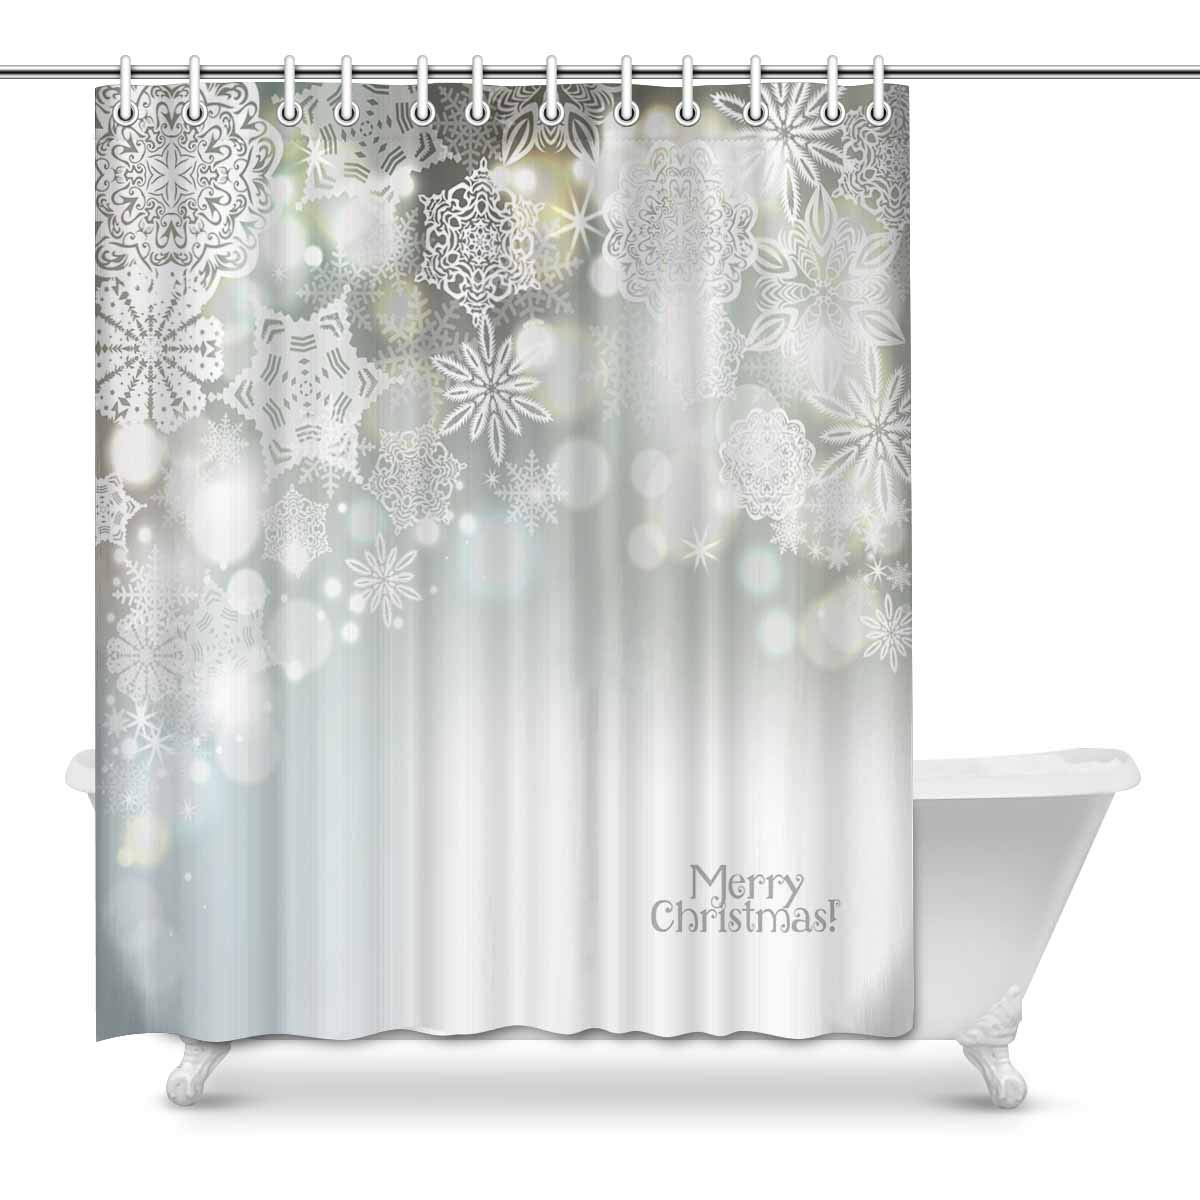 Amazon INTERESTPRINT Christmas Snowflake Bathroom Decoration Decor Effect Fabric Shower Curtains 60 X 72 Inches Long Home Kitchen